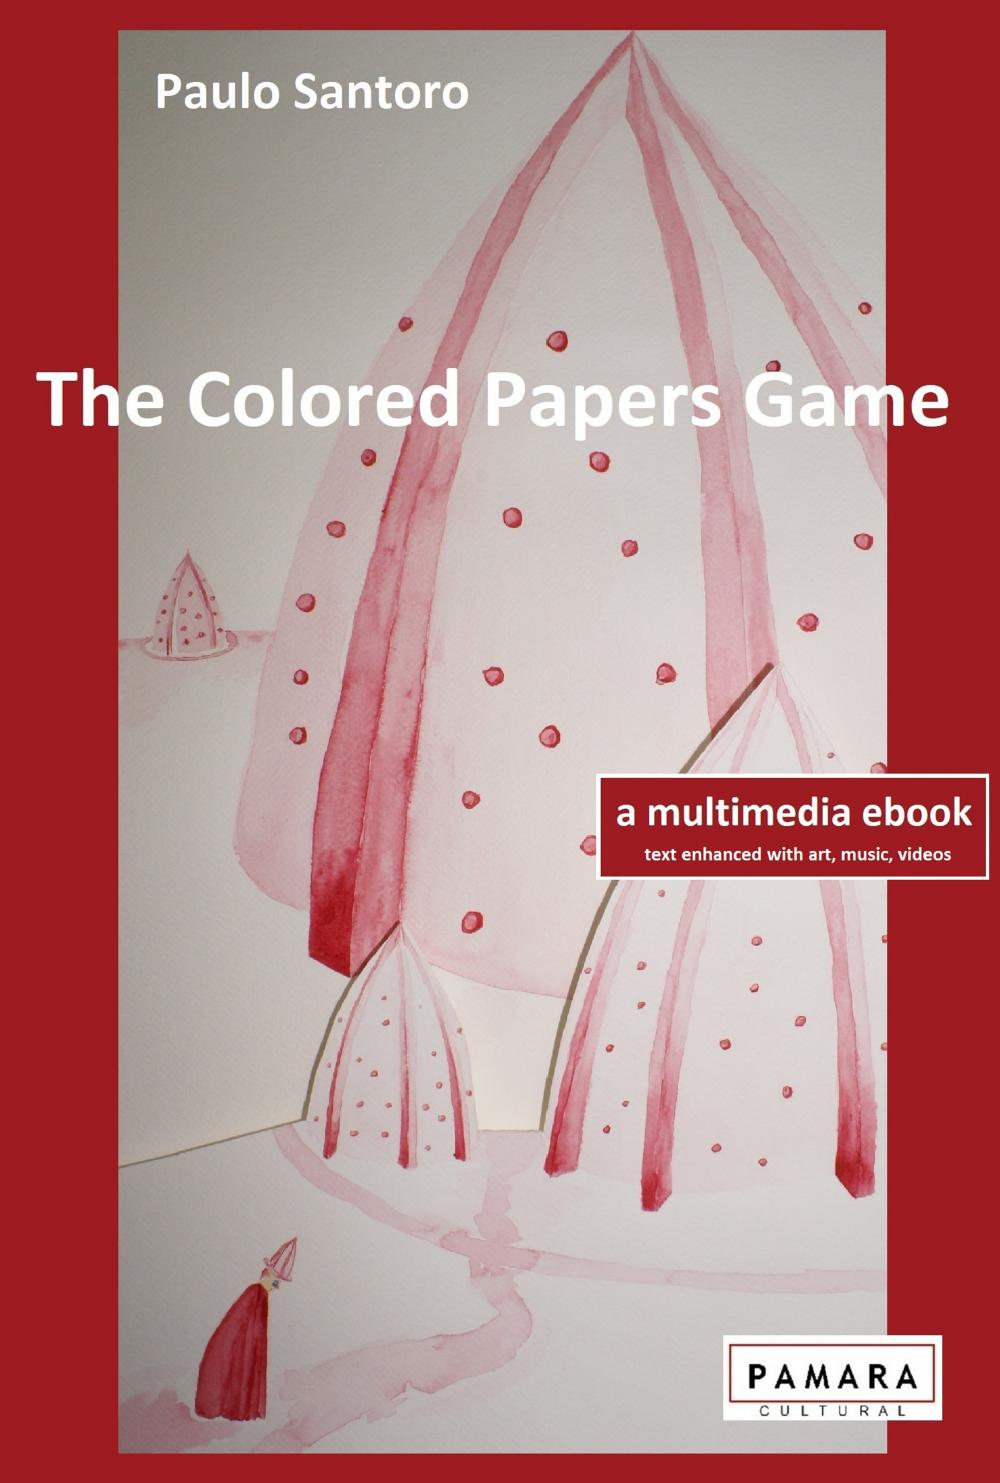 Lançamento ebook The Colored Papers Game